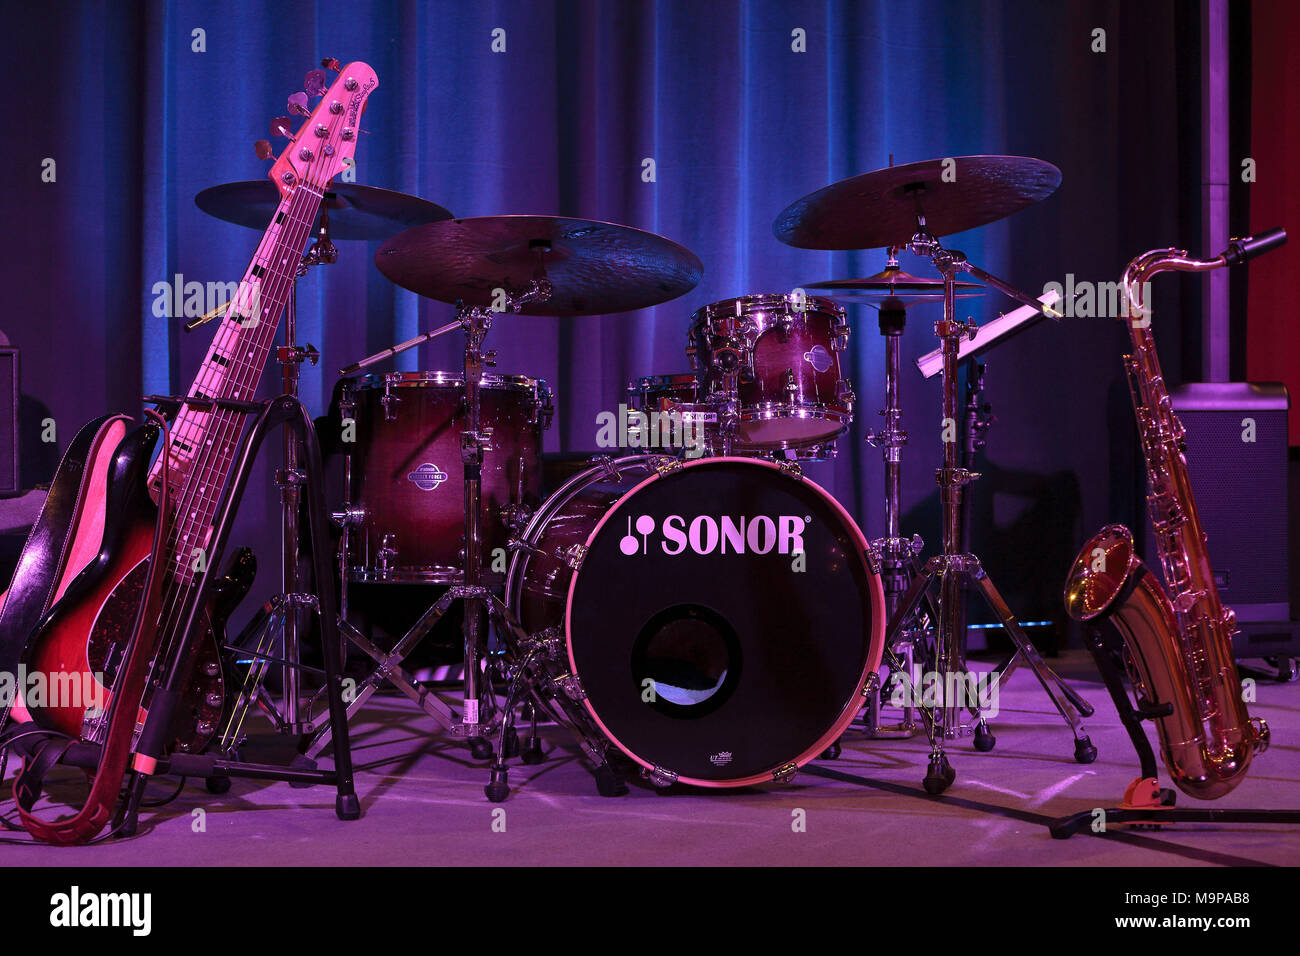 Instruments of a jazz band on stage, big band, electric bass, drums and saxophone - Stock Image